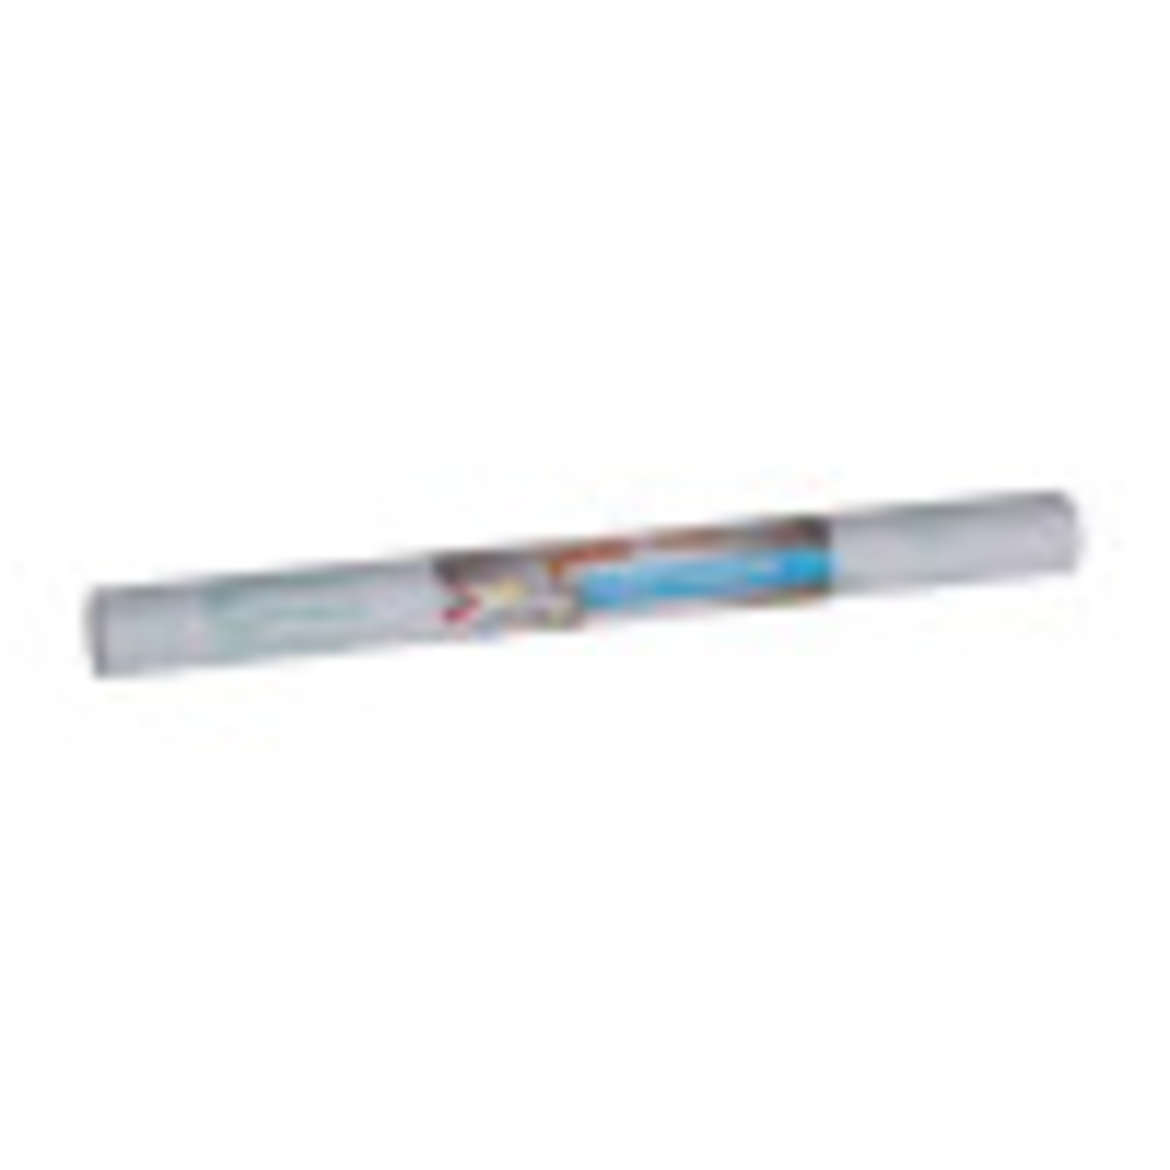 Duck® Brand Peel & Stick Adhesive Laminate - Clear, 20 in. x 15 ft. Image